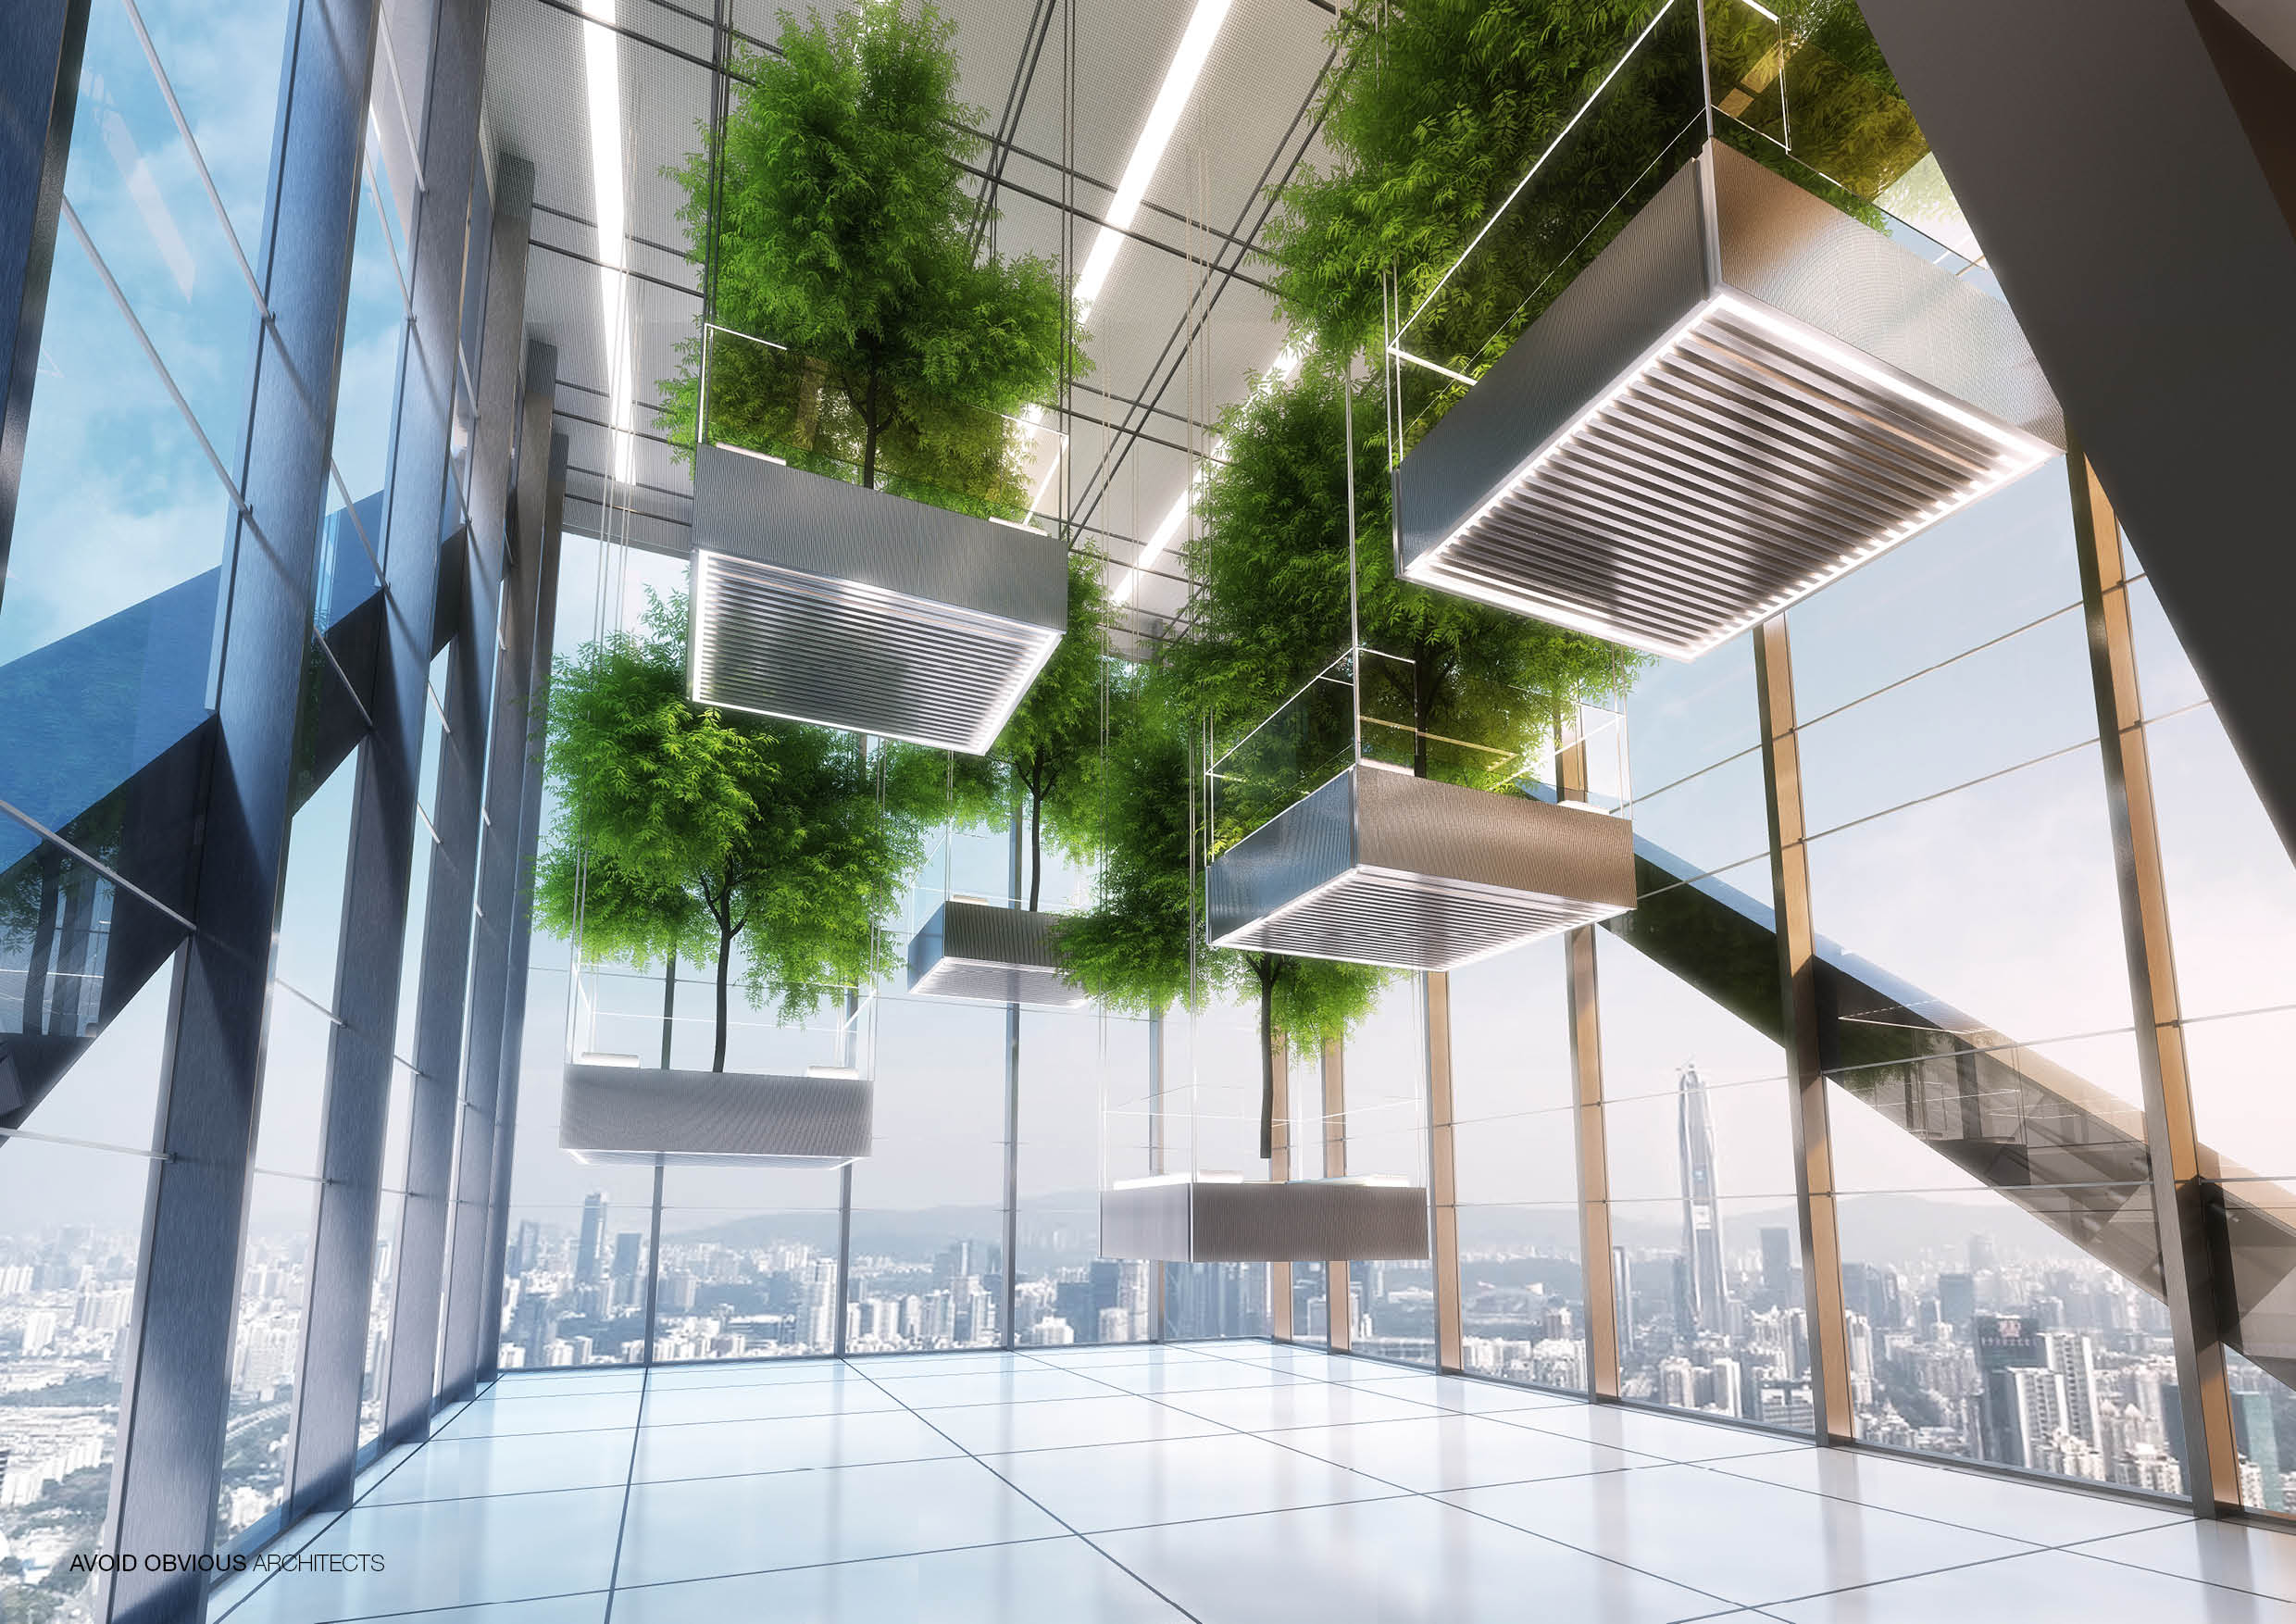 The cloud, Office, Sustainable, customizable, flexible, workplace, future, architecture, interior, design, green, plants, indoors, avoid obvious, aoa, aoarchitect, aviation, air, flying, airline, lobby, exhibition, 2020, garden, fly